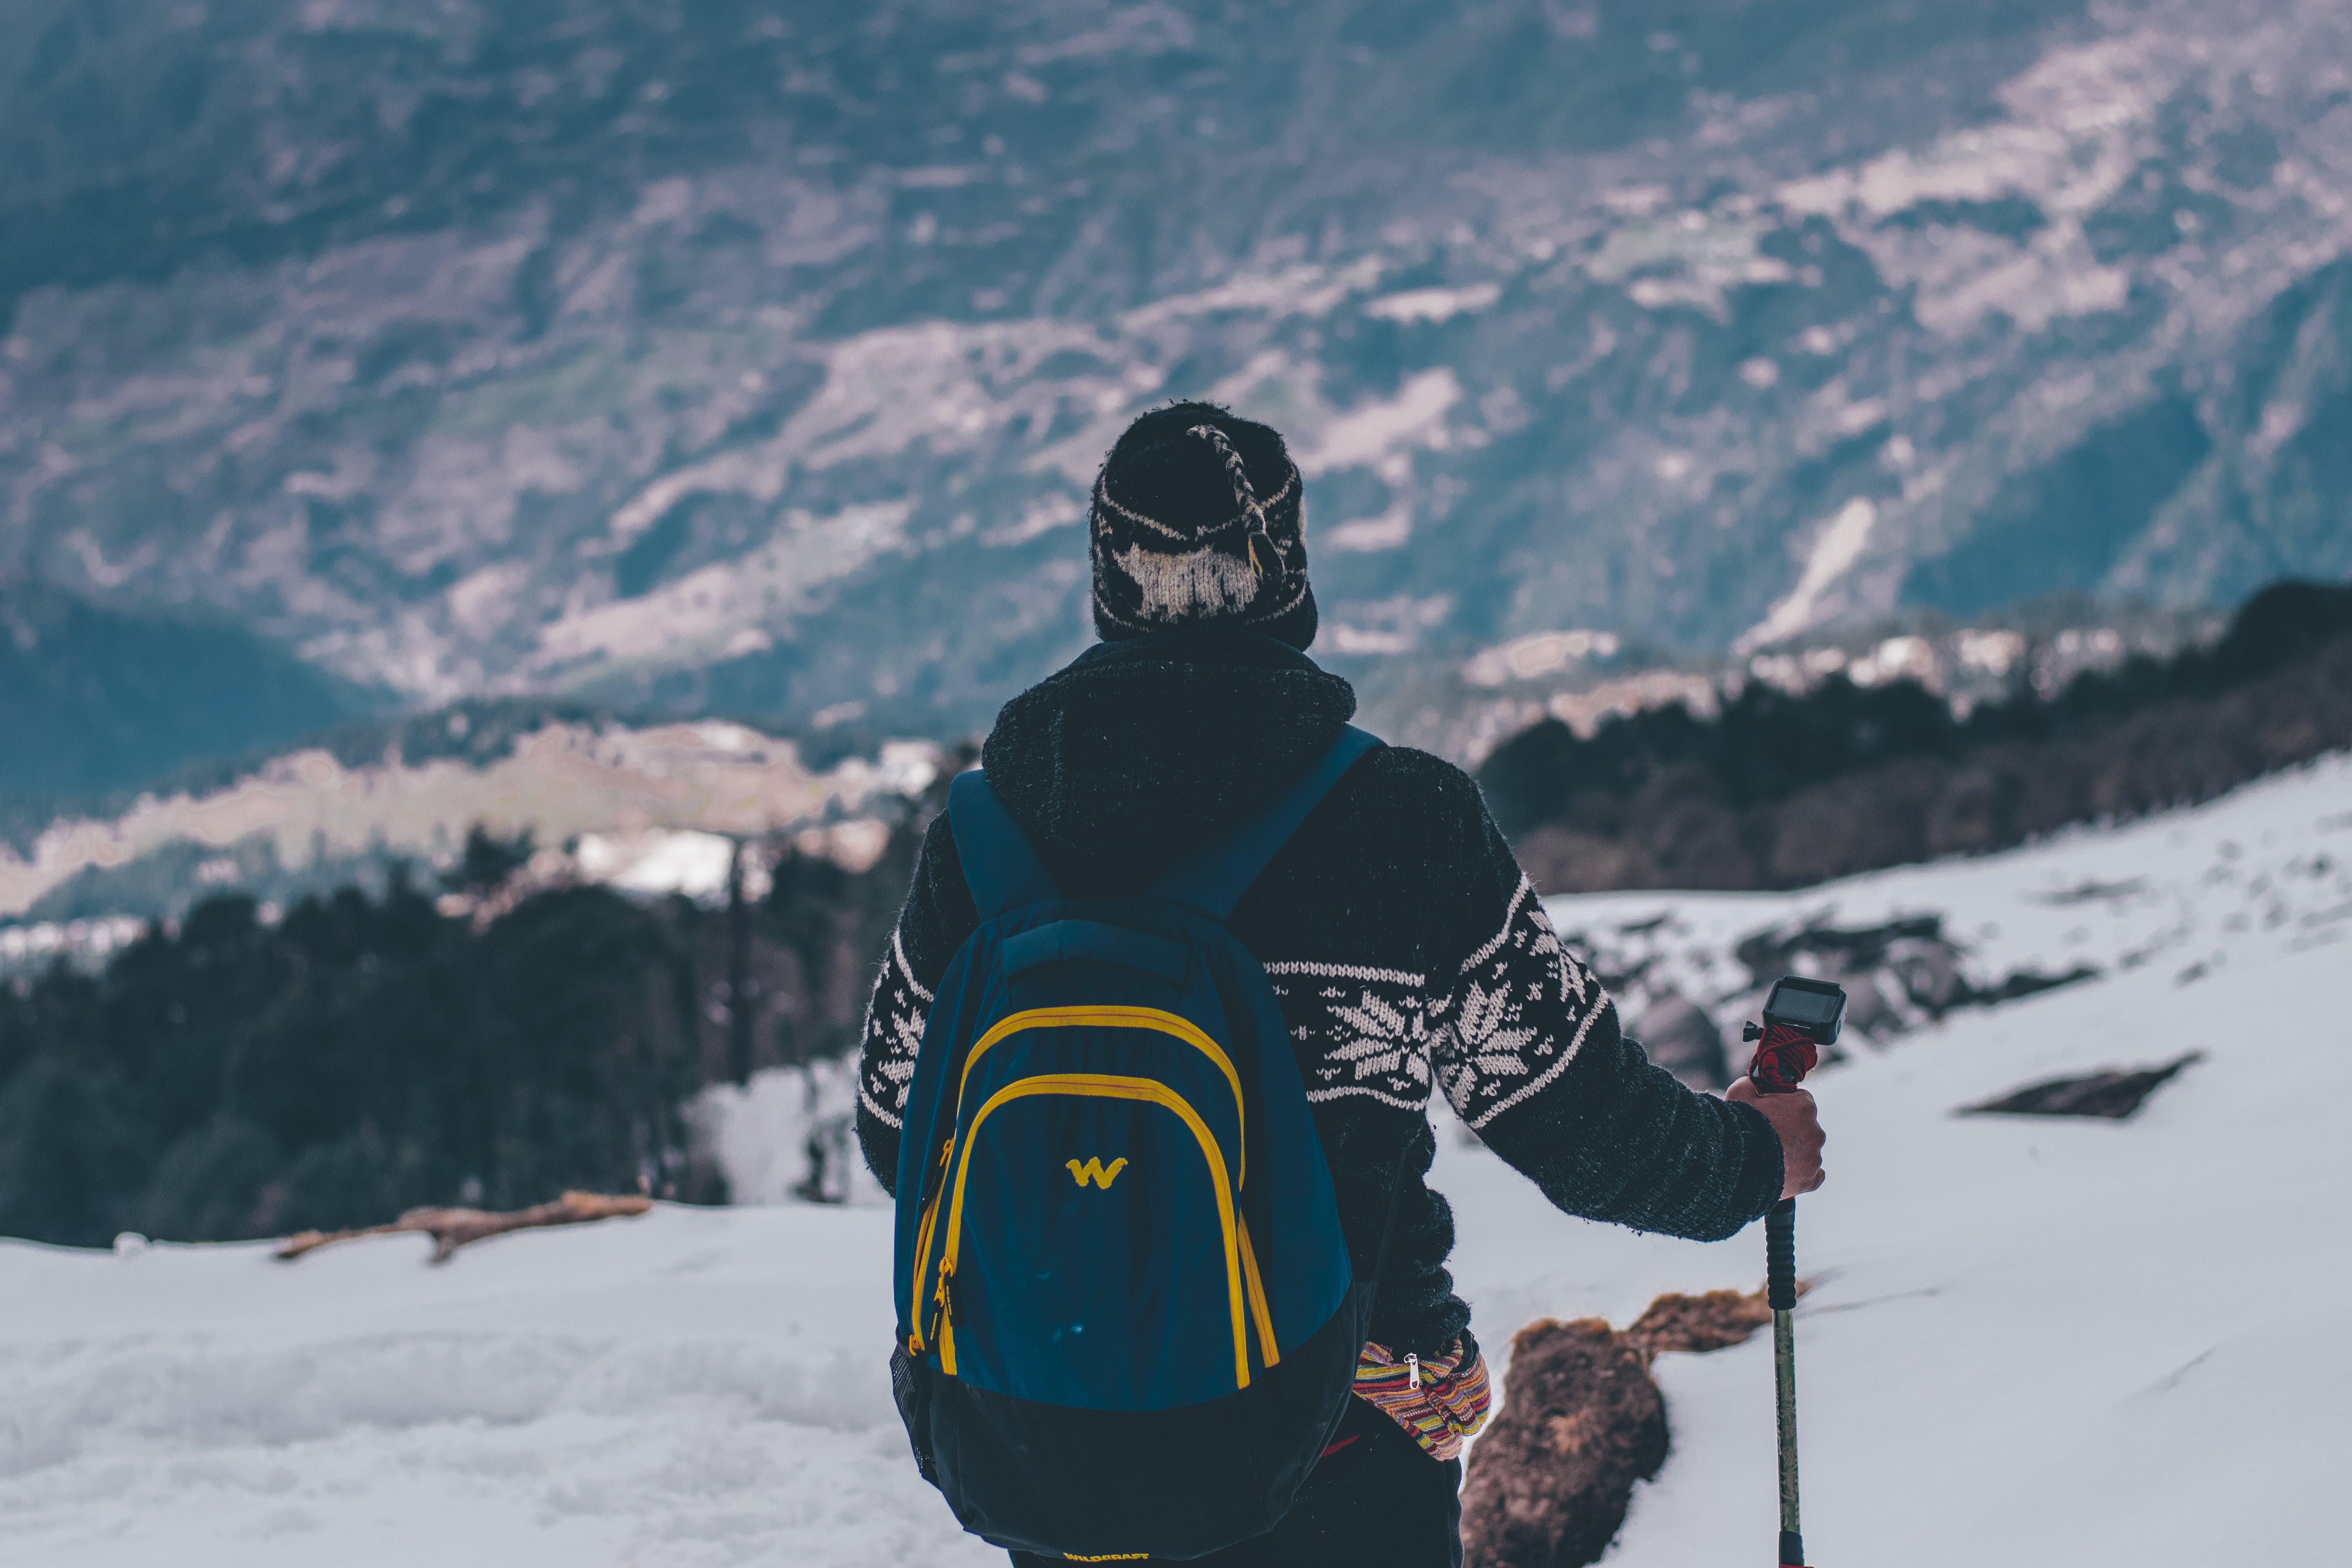 Man in Black and White Jacket and Blue Backpack Doing Snow Ski